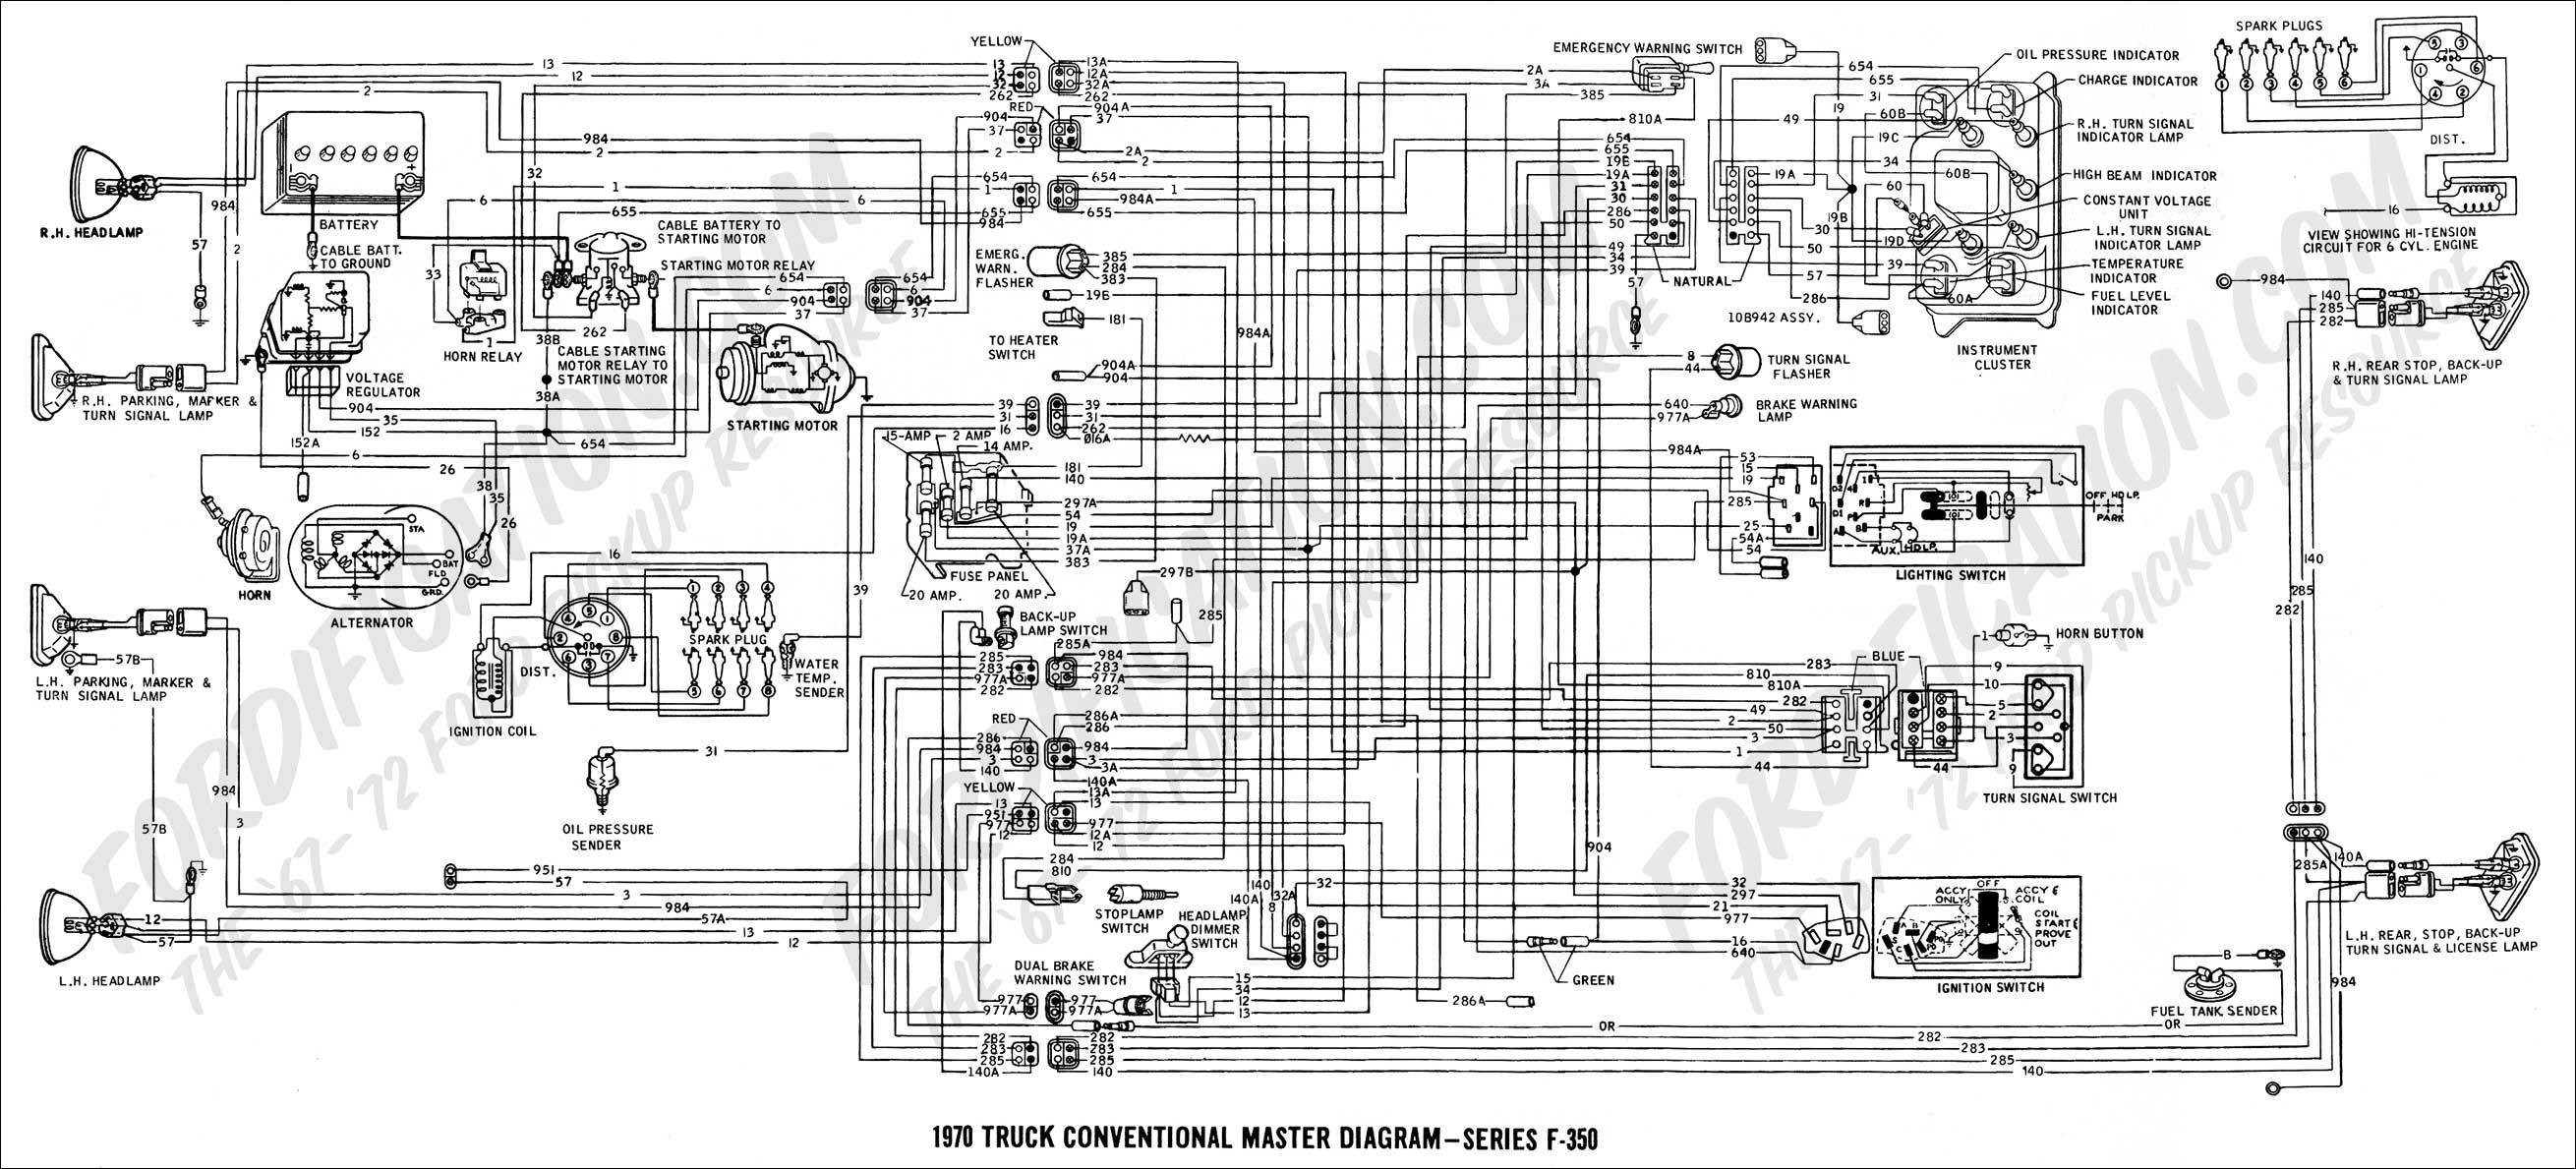 Ford Electrical Wiring Diagrams 1981 1970 Gmc Truck Diagram 1970s Engine Rh Banyan Palace Com F